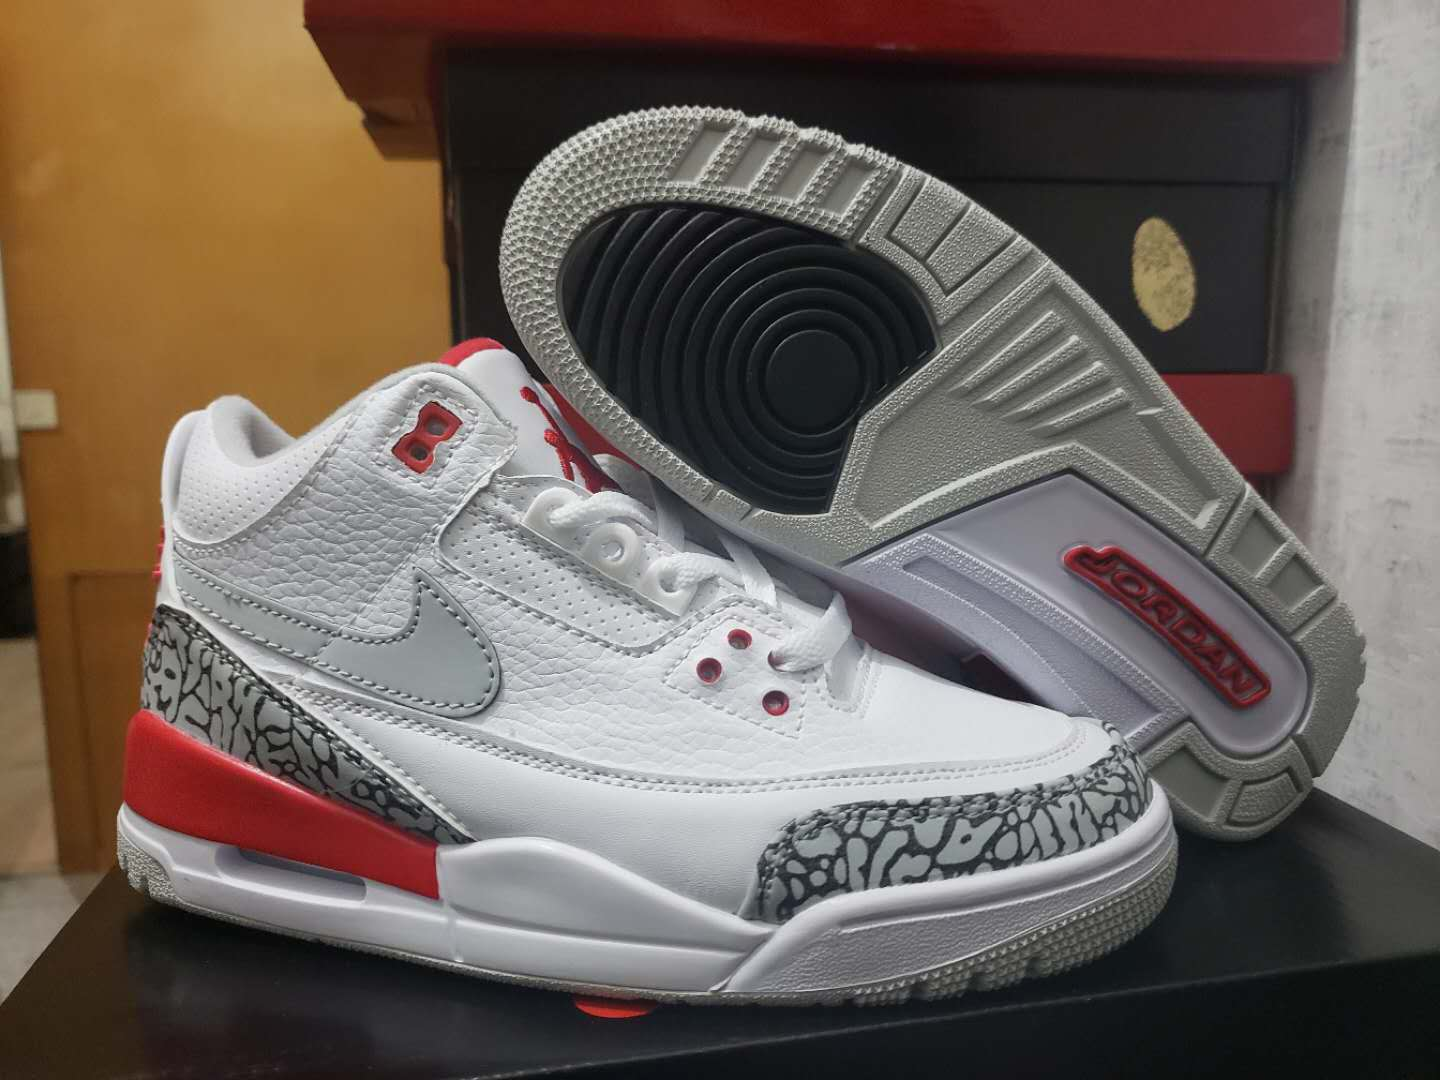 New Air Jordan 3 White Cement Grey Red Blue Orange Shoes